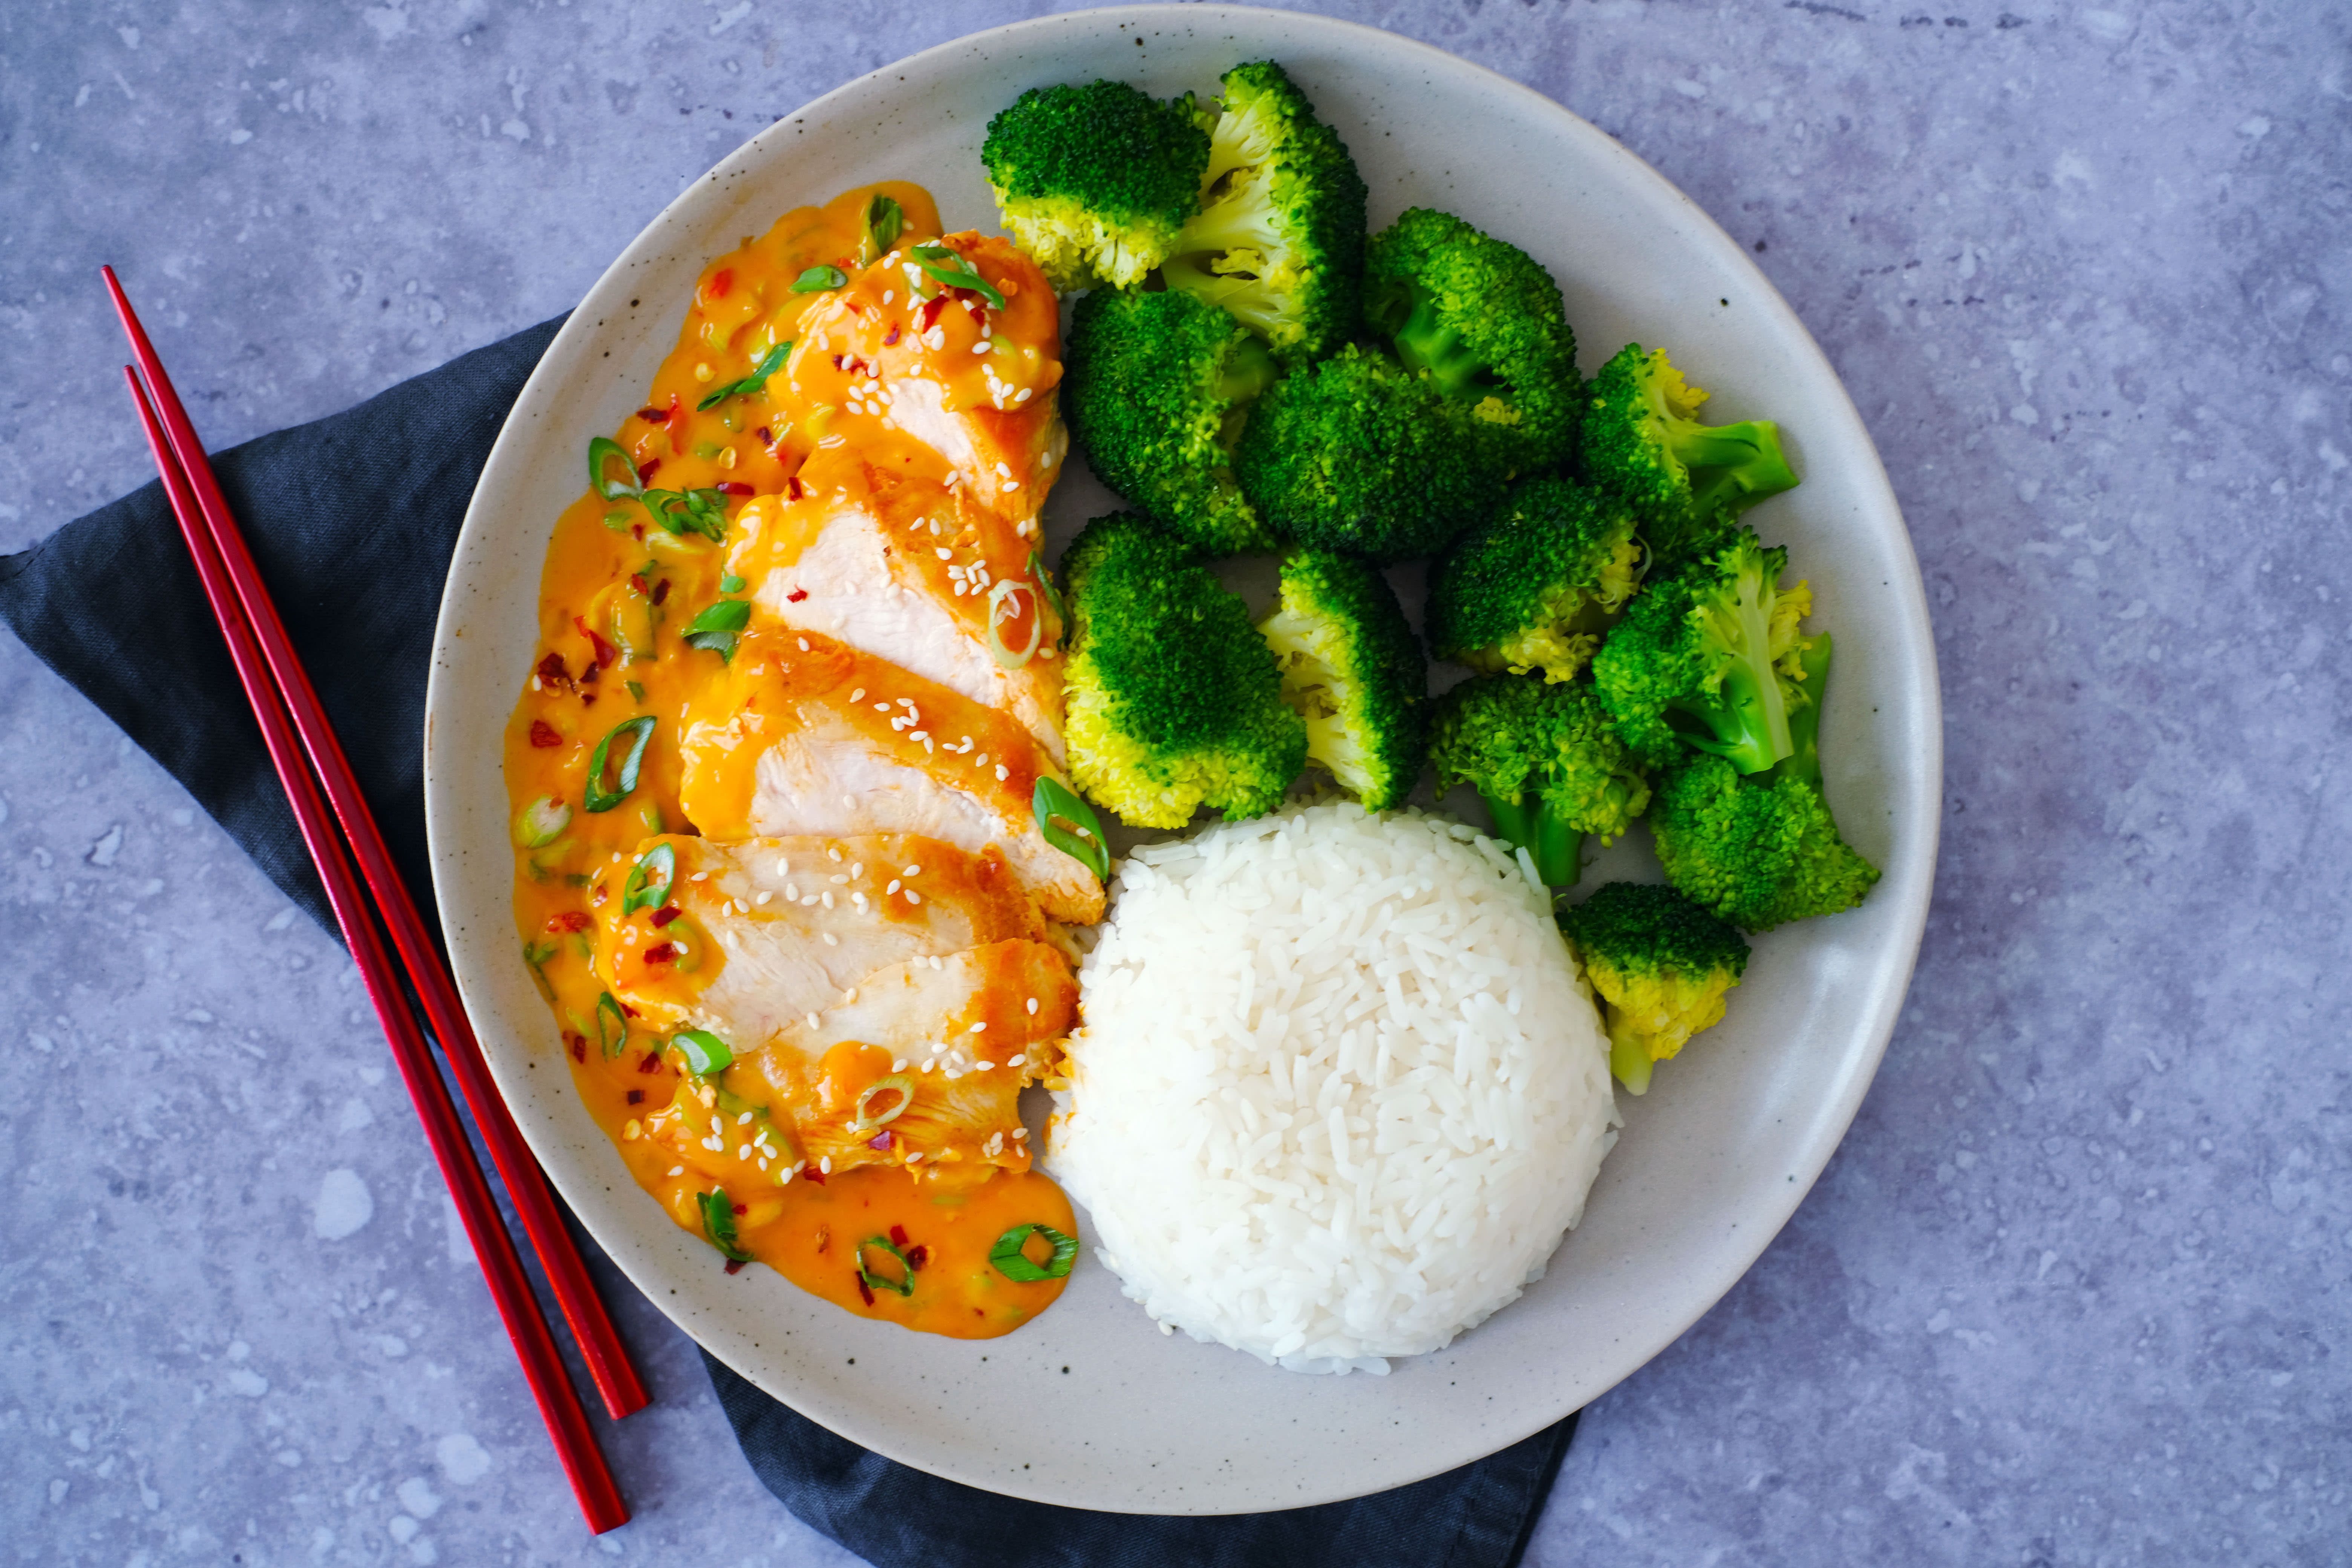 Firecracker Mayo Chicken with Broccoli and Rice